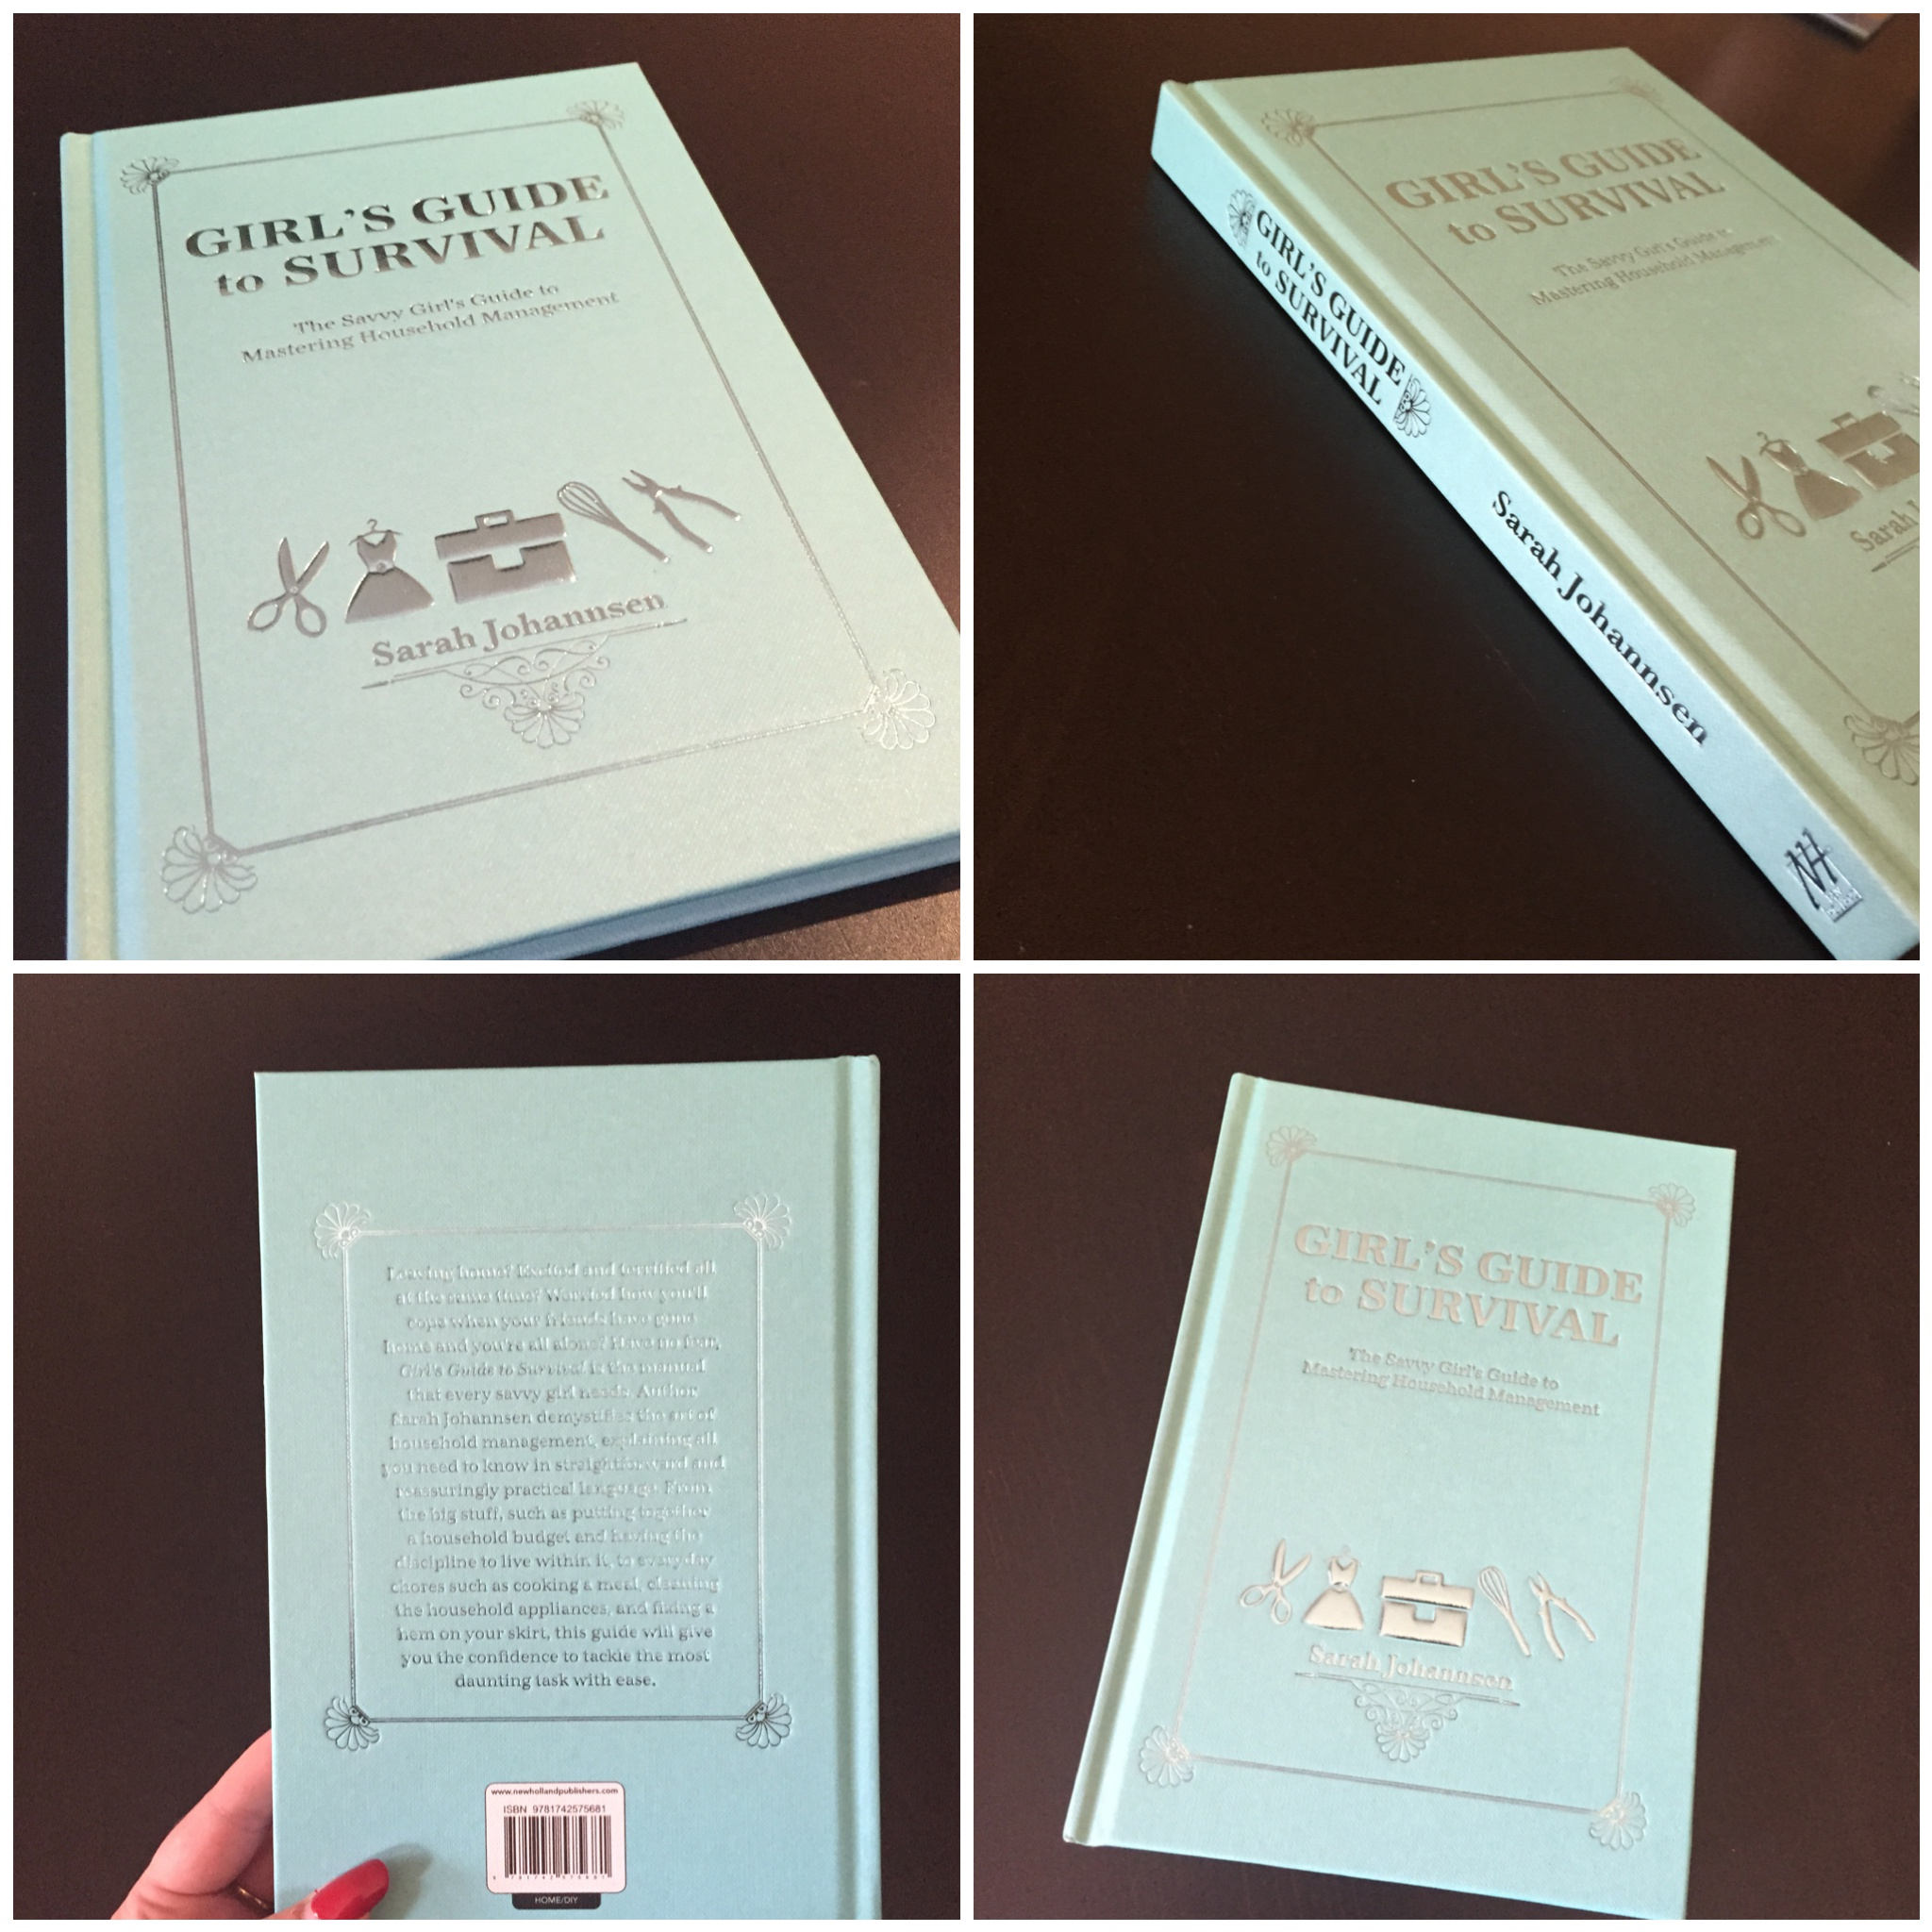 OMG!!! The Book Arrived Today, See It In The Flesh! The Girl's Guide to Survival by Sarah Johannsen